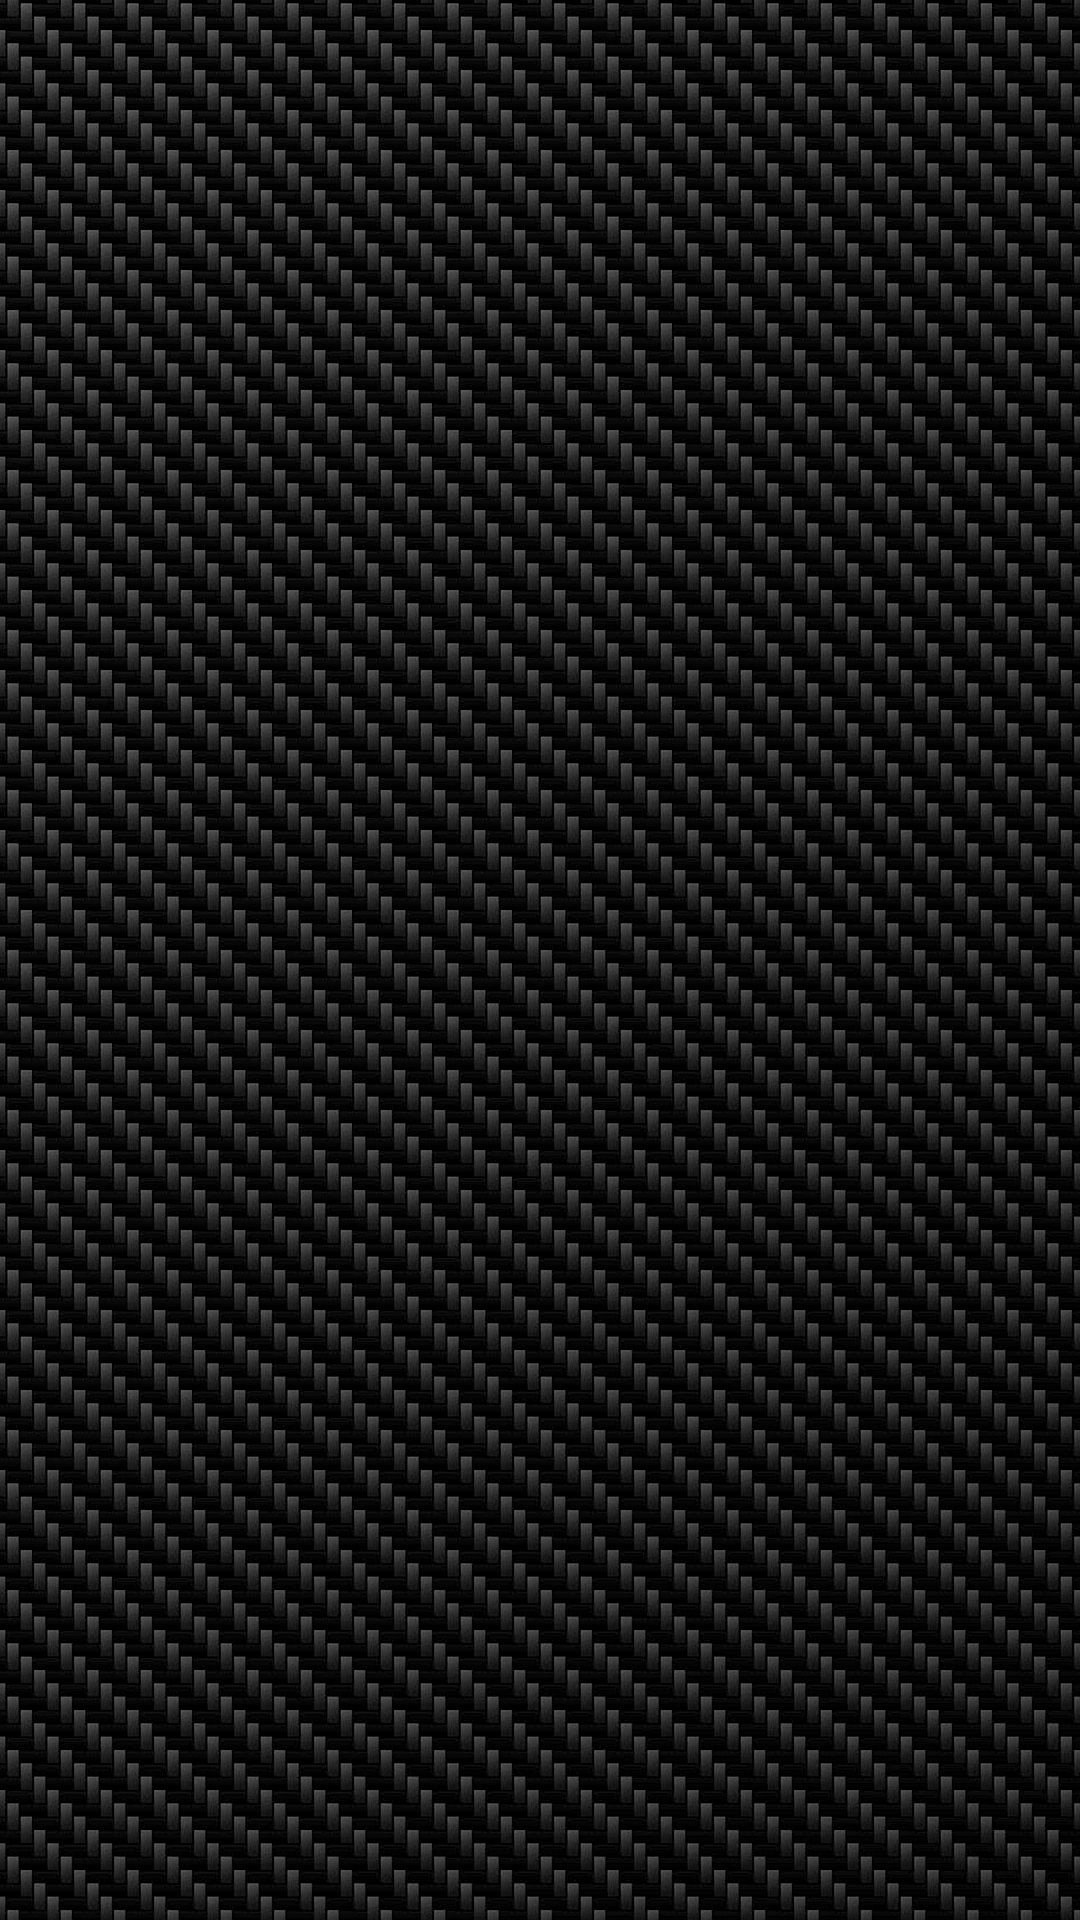 Iphone 6 carbon fiber wallpaper wallpapersafari - Real carbon fiber wallpaper ...